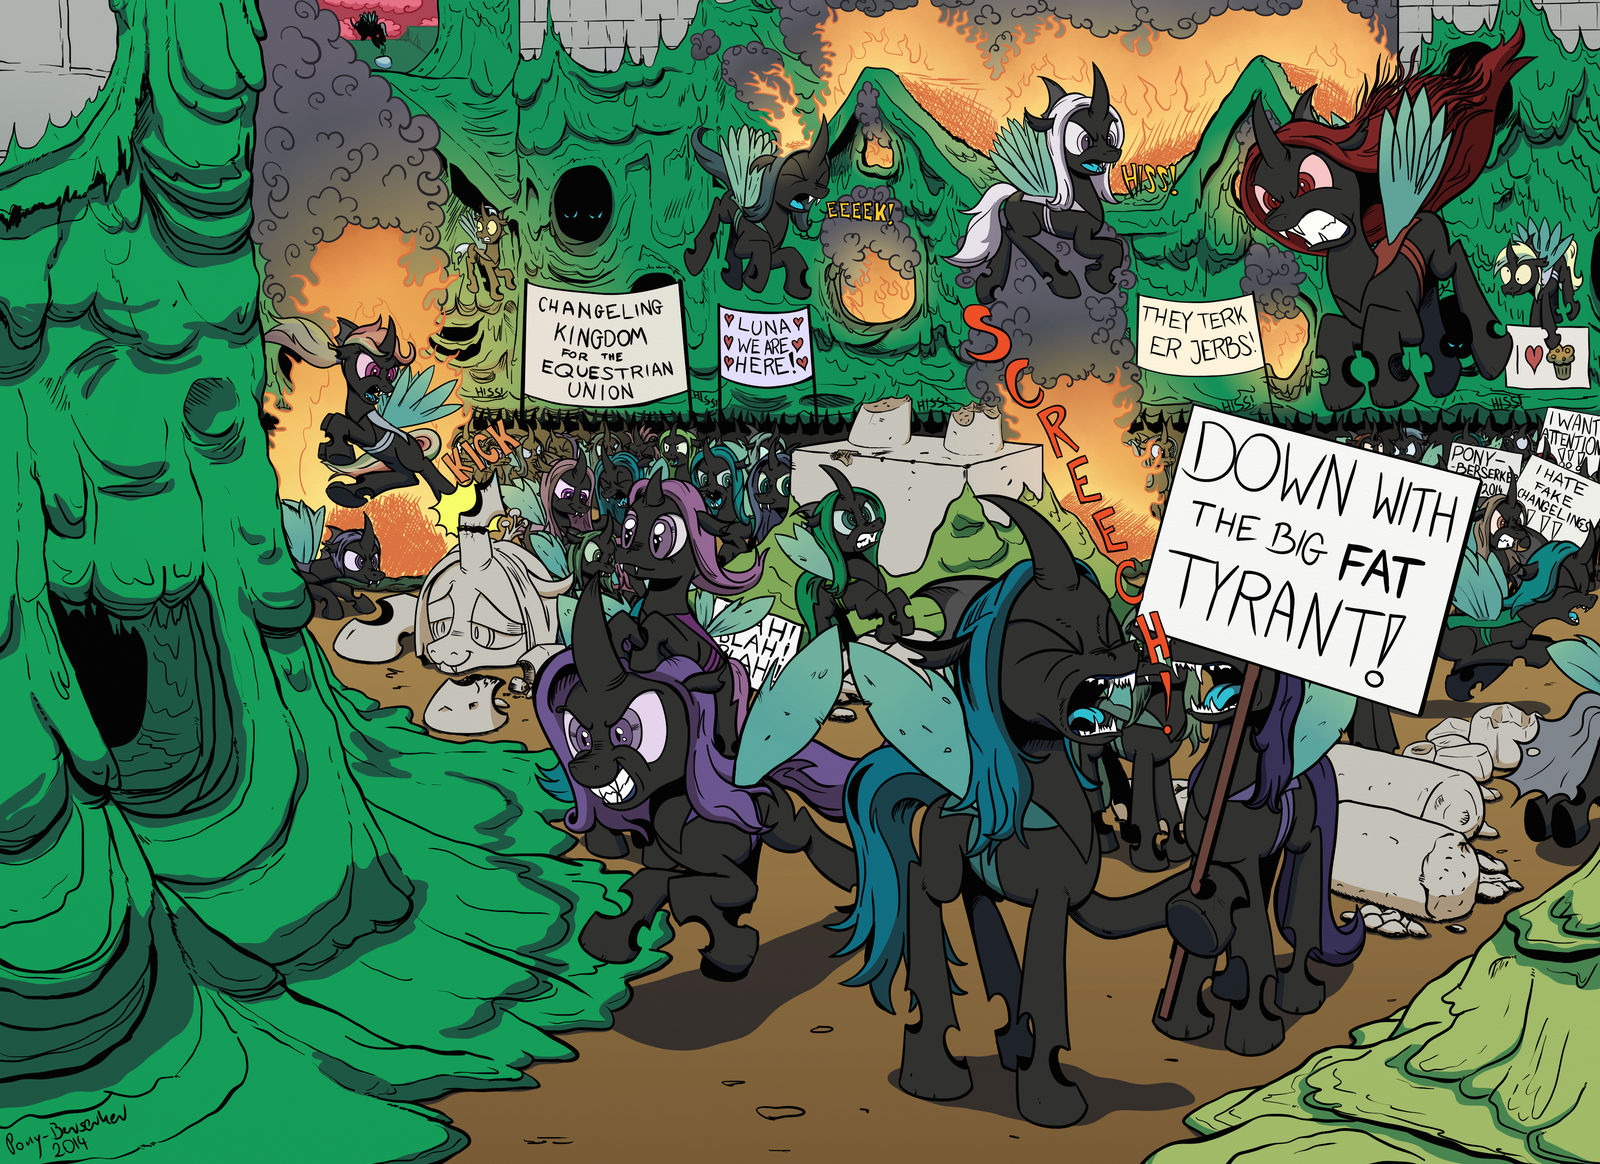 The Times, They Are A Changeling!